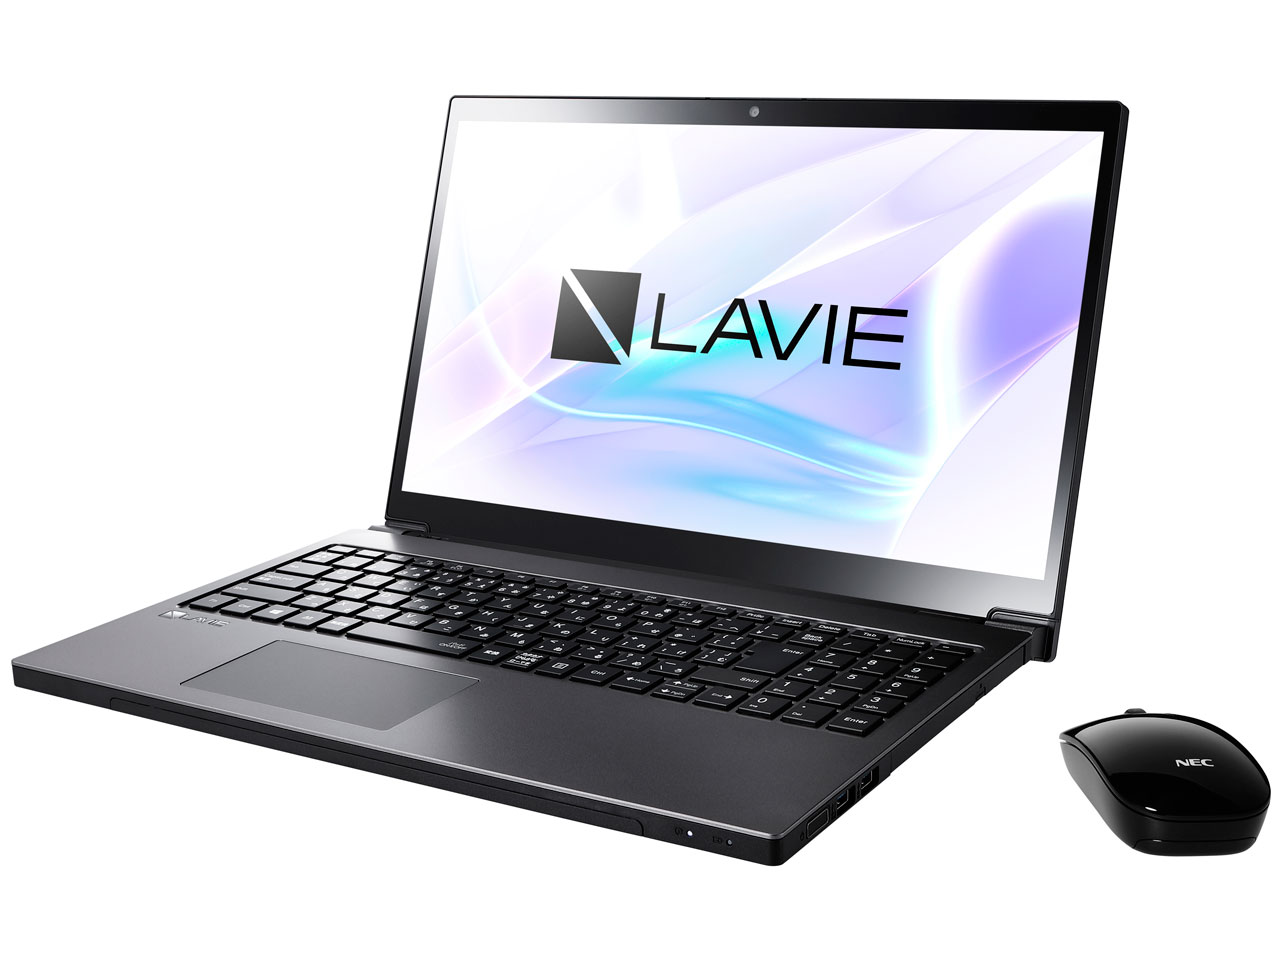 LAVIE Note NEXT NX850/JA 2017年秋冬モデル